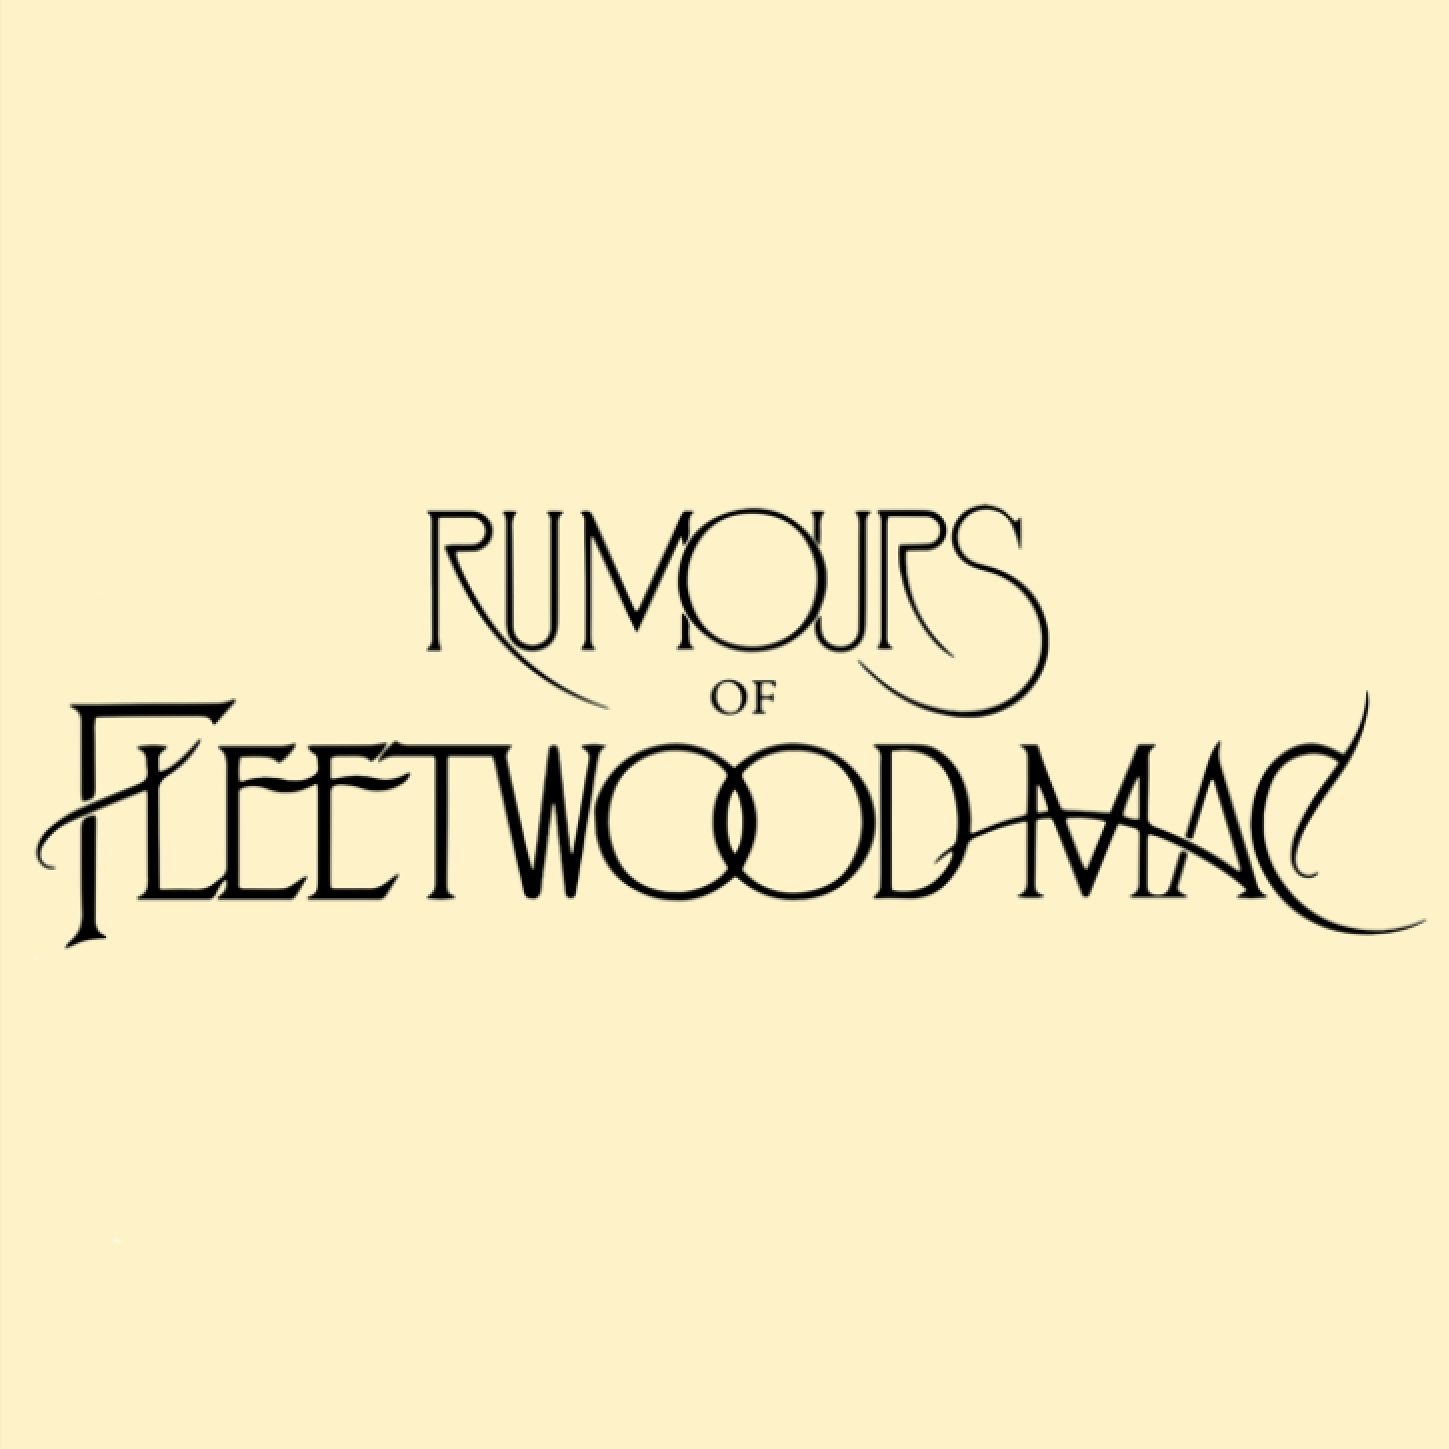 Fleetwood Mac Tour 2020.Rumours Of Fleetwood Mac Guildford Tickets G Live 6th Mar 2020